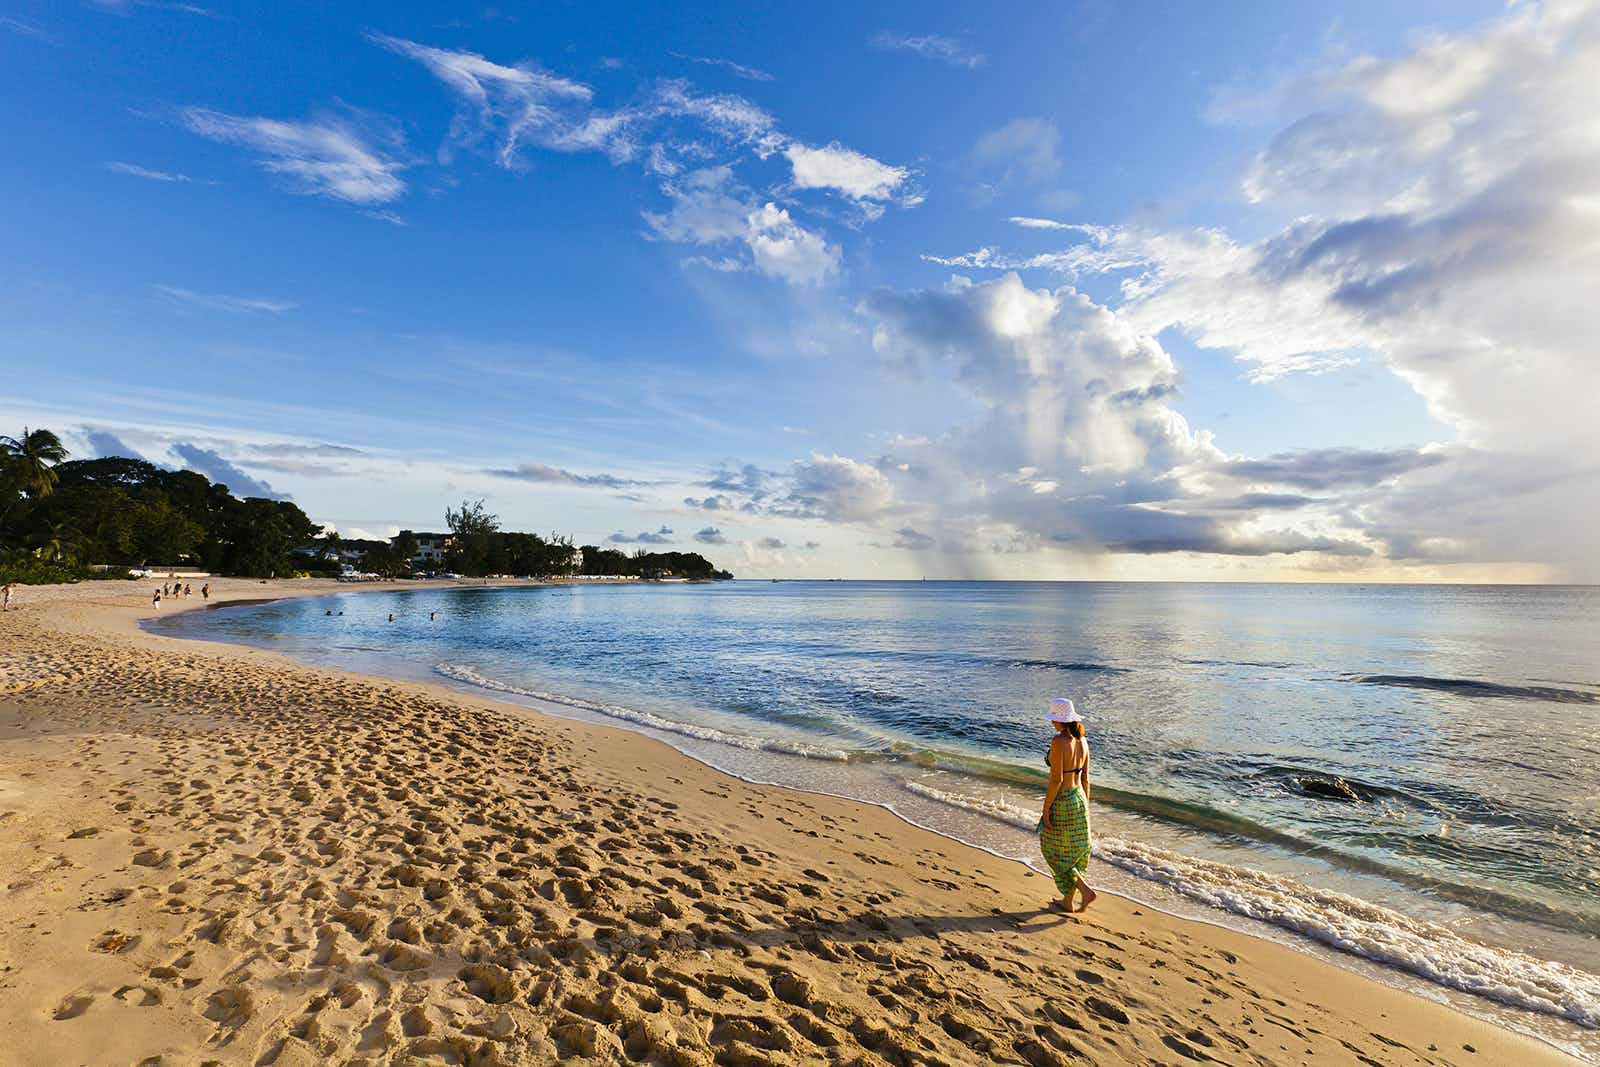 Woman walking on the beach of Paynes Bay at sunset. Surrounded by a beautiful stretch of sand, this is one of the most popular beach on the west coast of Barbados. Canon EOS 5D Mark II